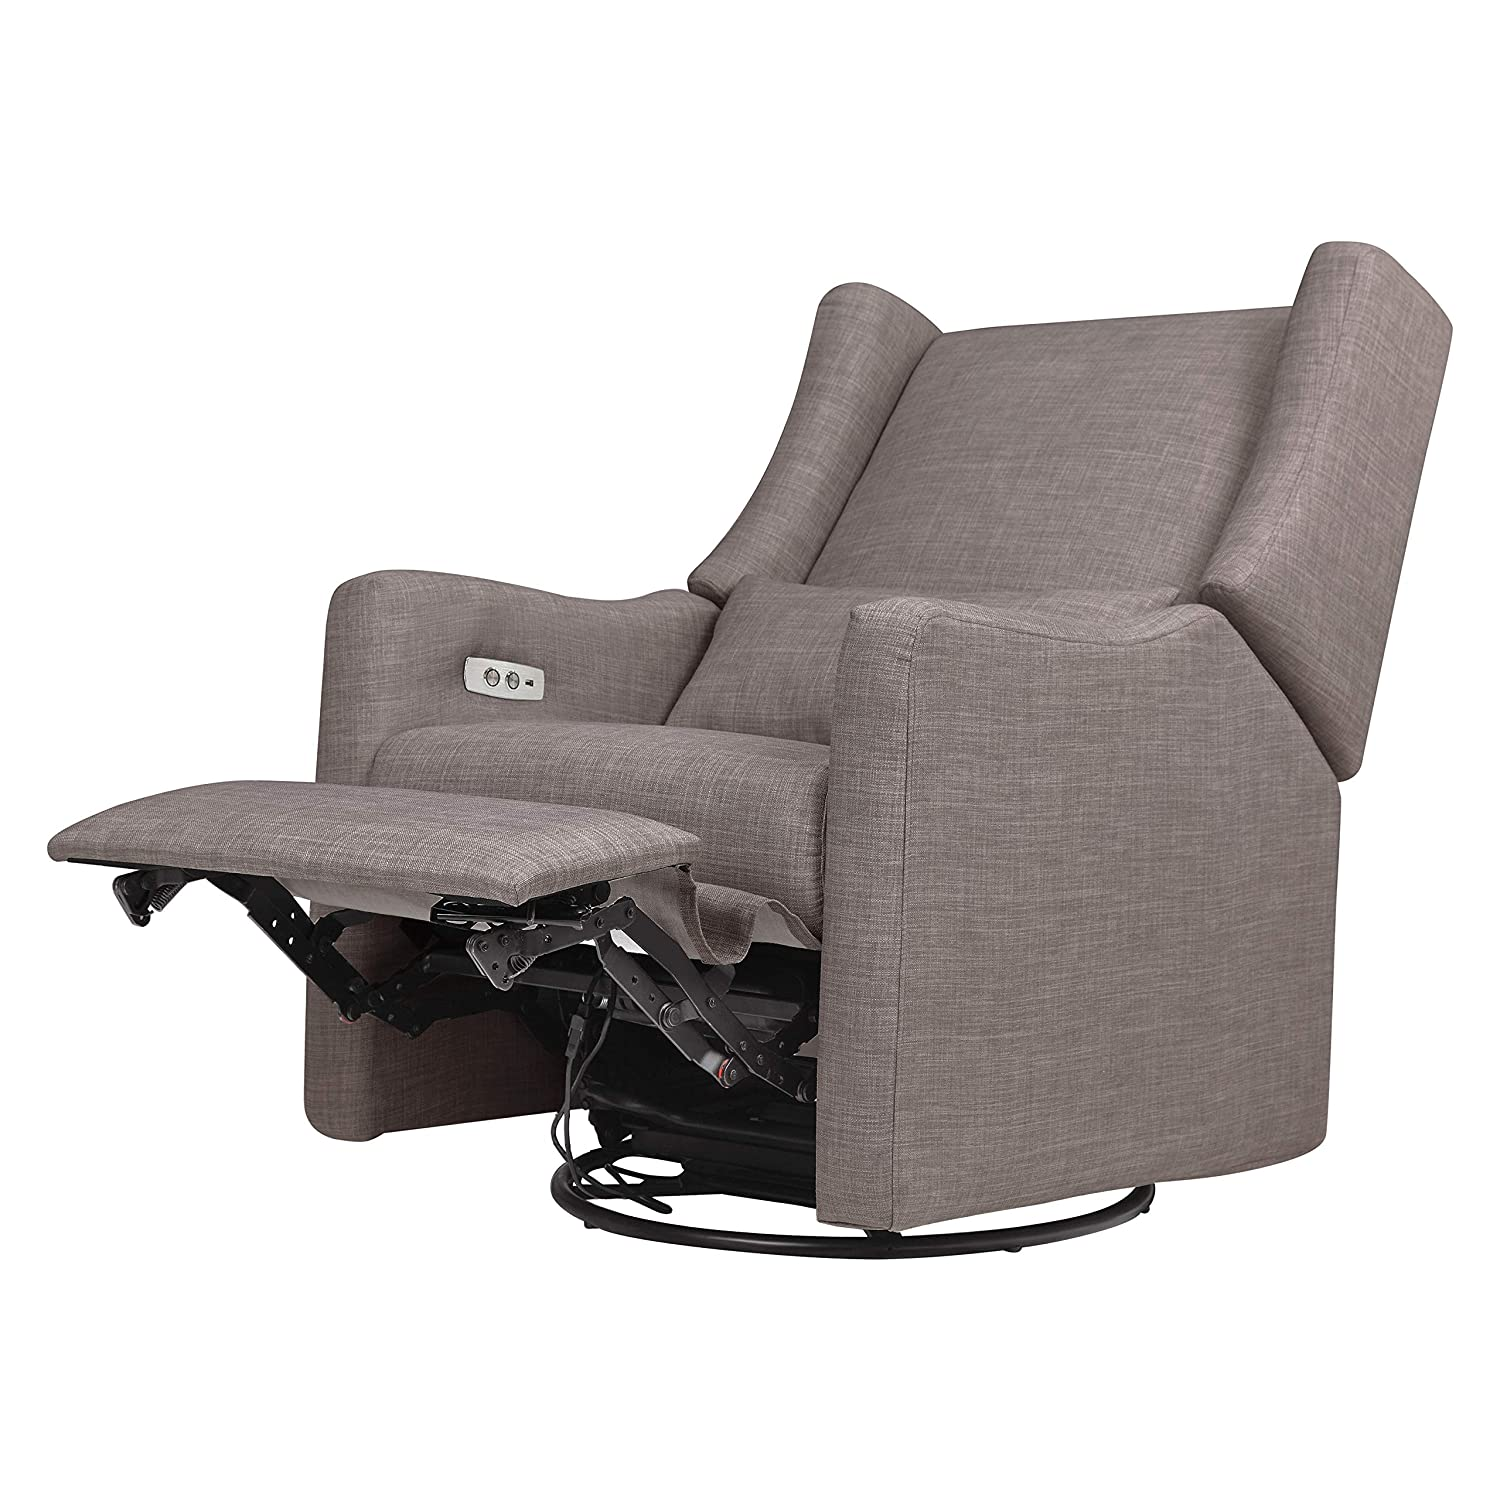 Babyletto Kiwi Recliner and Swivel Best Nursery Glider